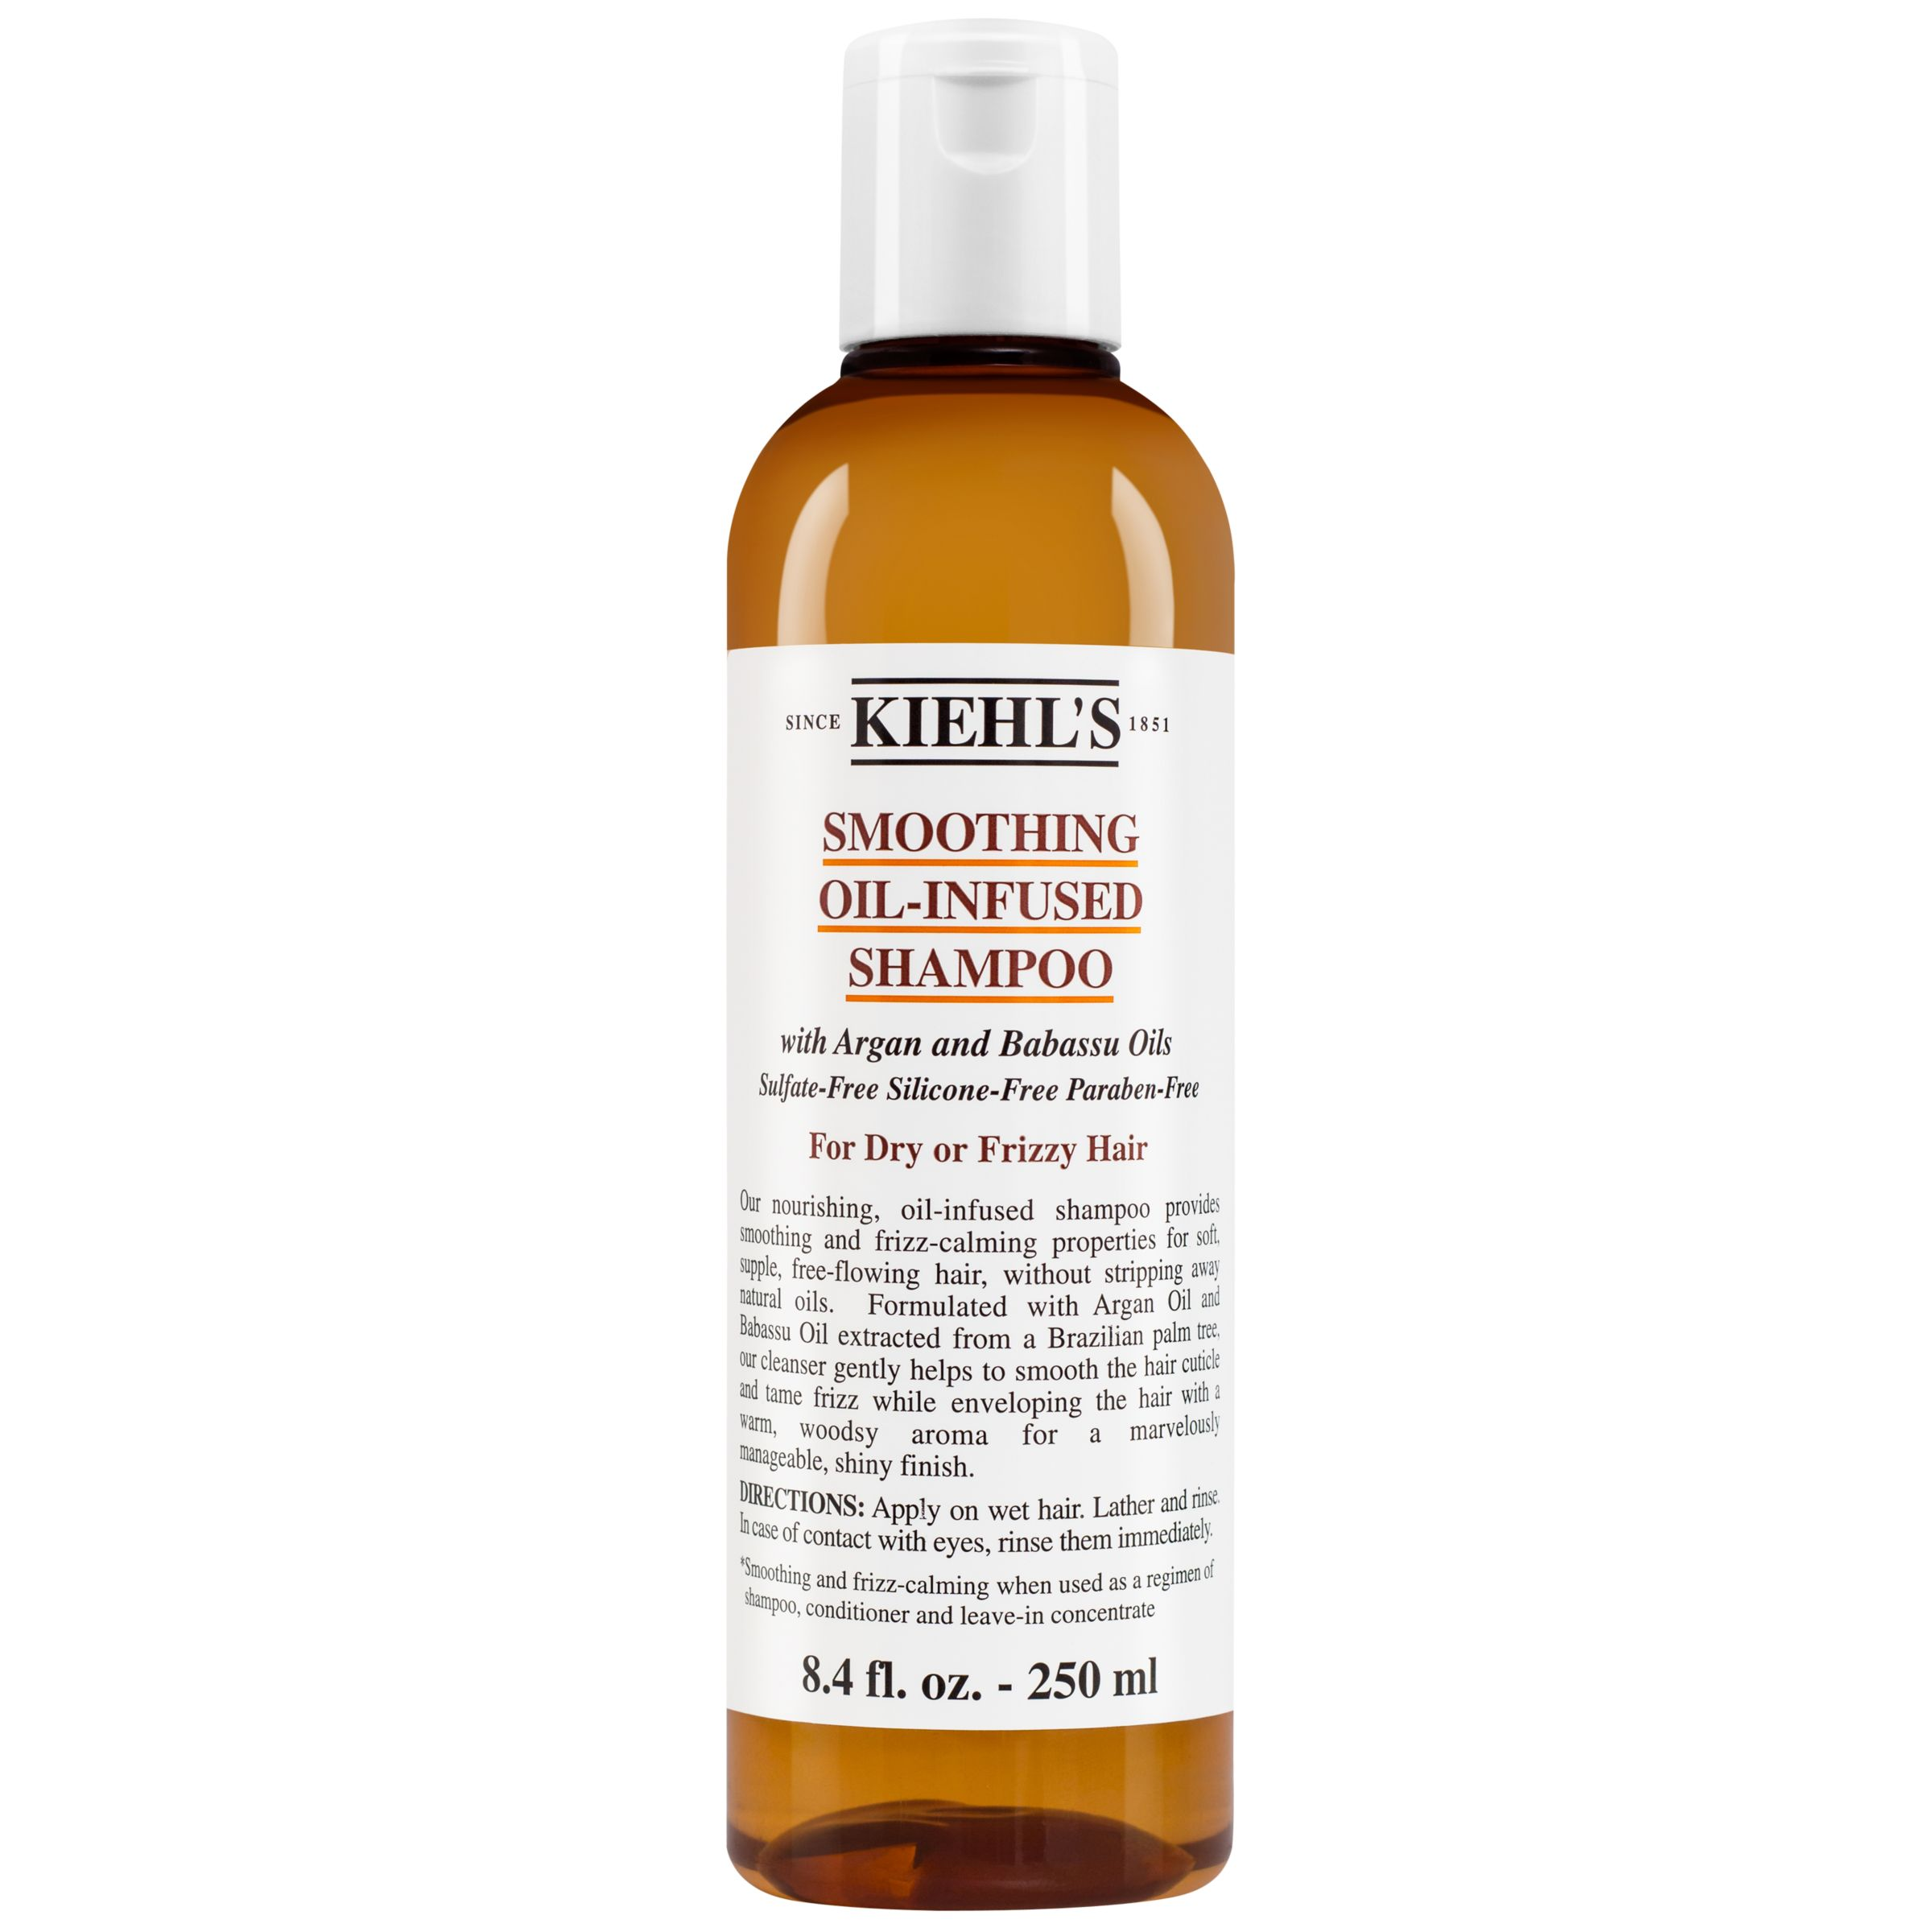 Kiehls Kiehl's Smoothing Oil Infused Shampoo, Dry / Frizzy Hair